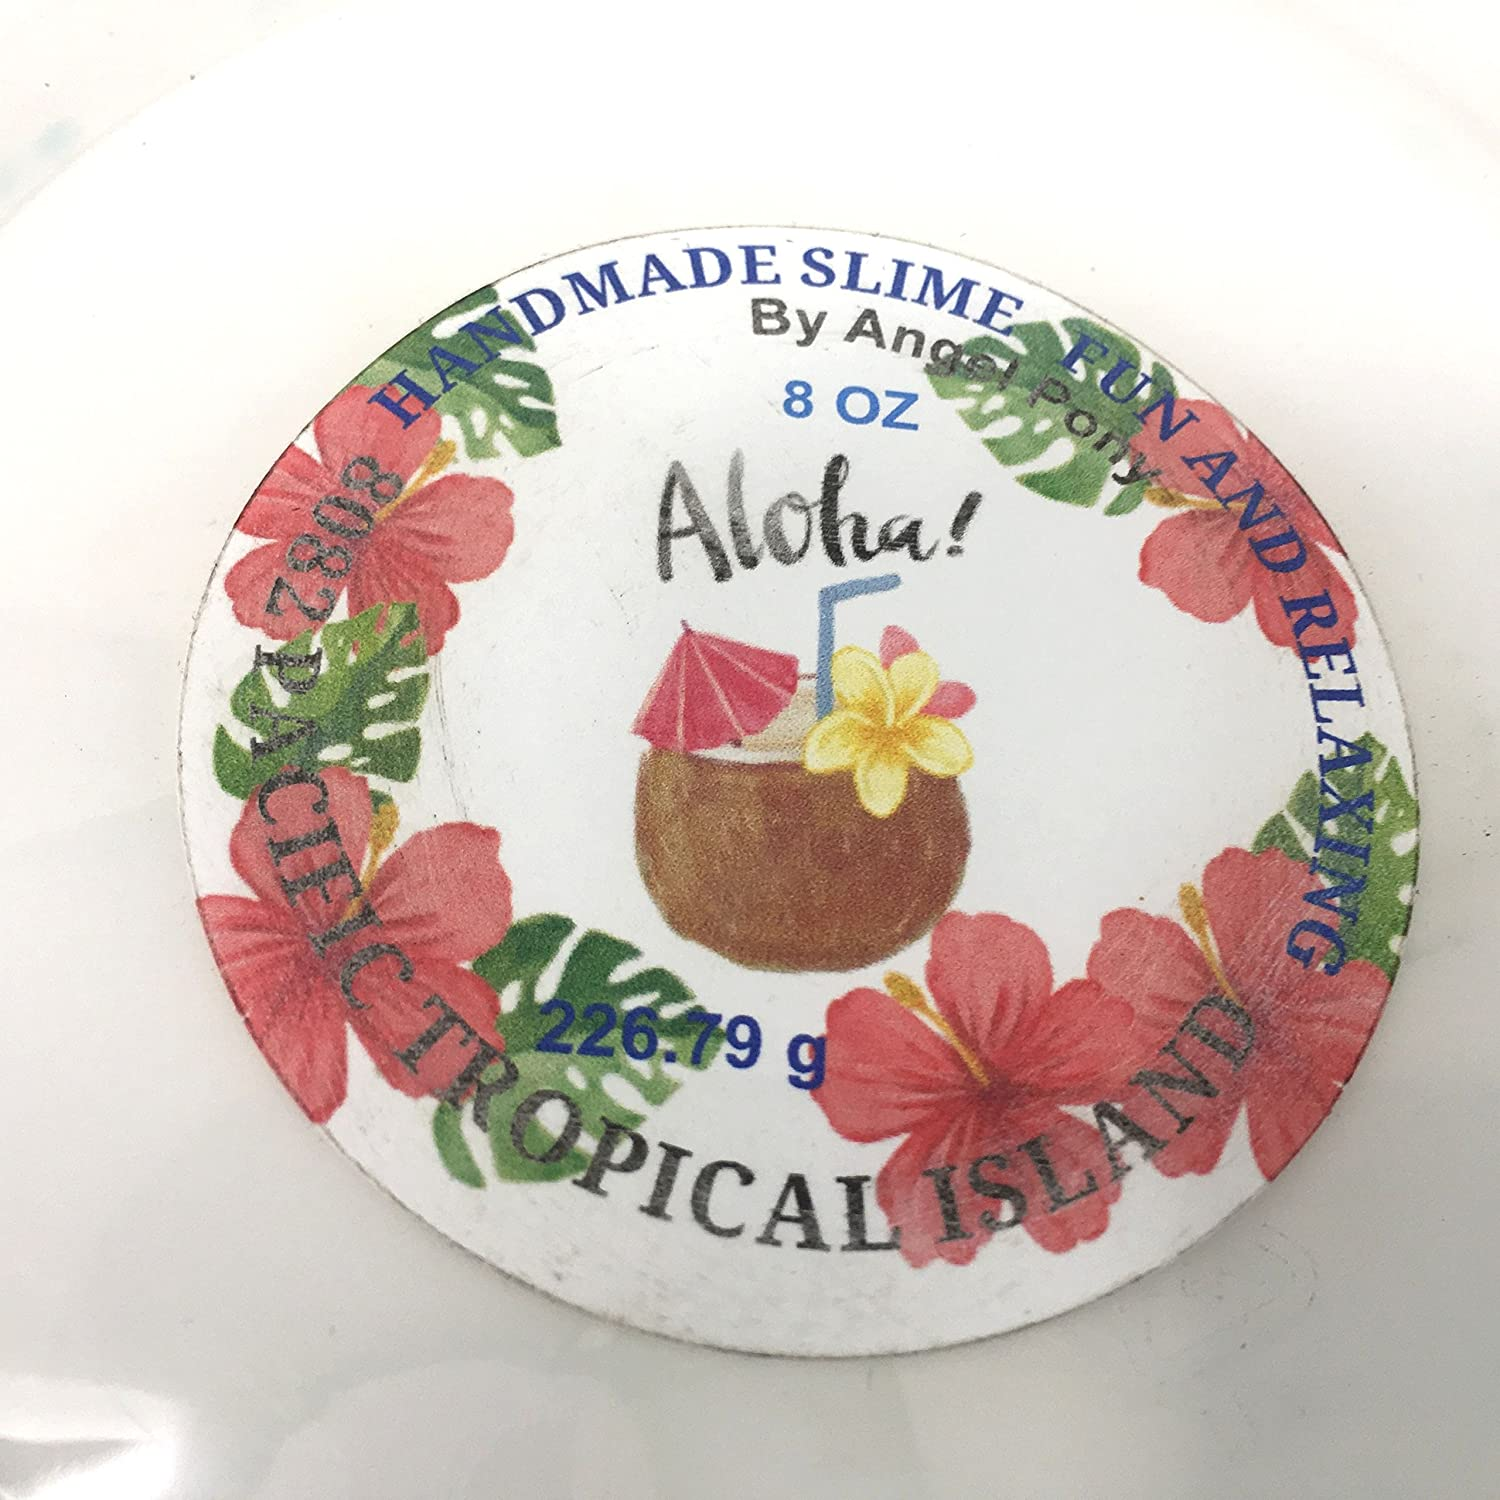 Aloha Pacific Tropical Island slow pull slime sweet fruits and flowers 8 oz container